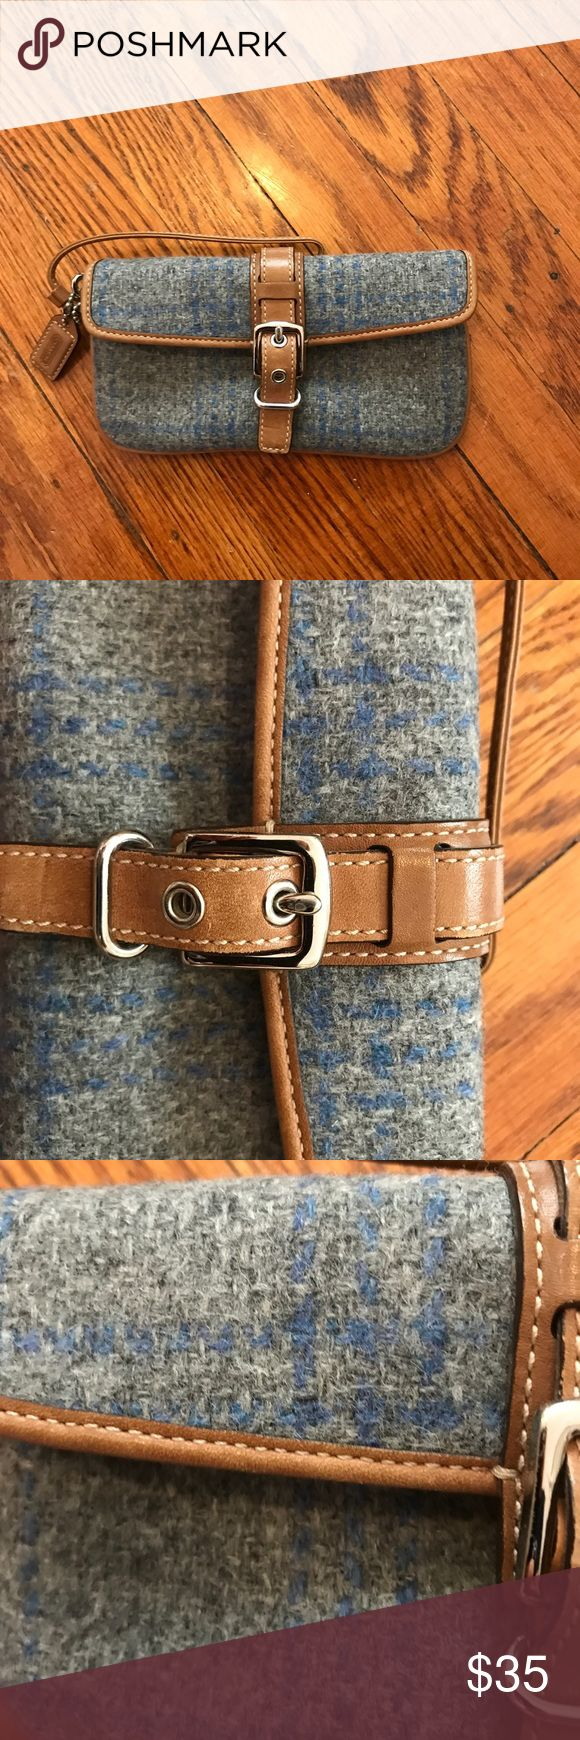 Coach Wristlet Blue wool with tan leather Coach Wristlet light blue wool with tan leather - in great condition- had a clasp to close - never worn- length  is 7 3/4 inches and height is 4 inches  depth is 3inches Coach Bags Clutches & Wristlets